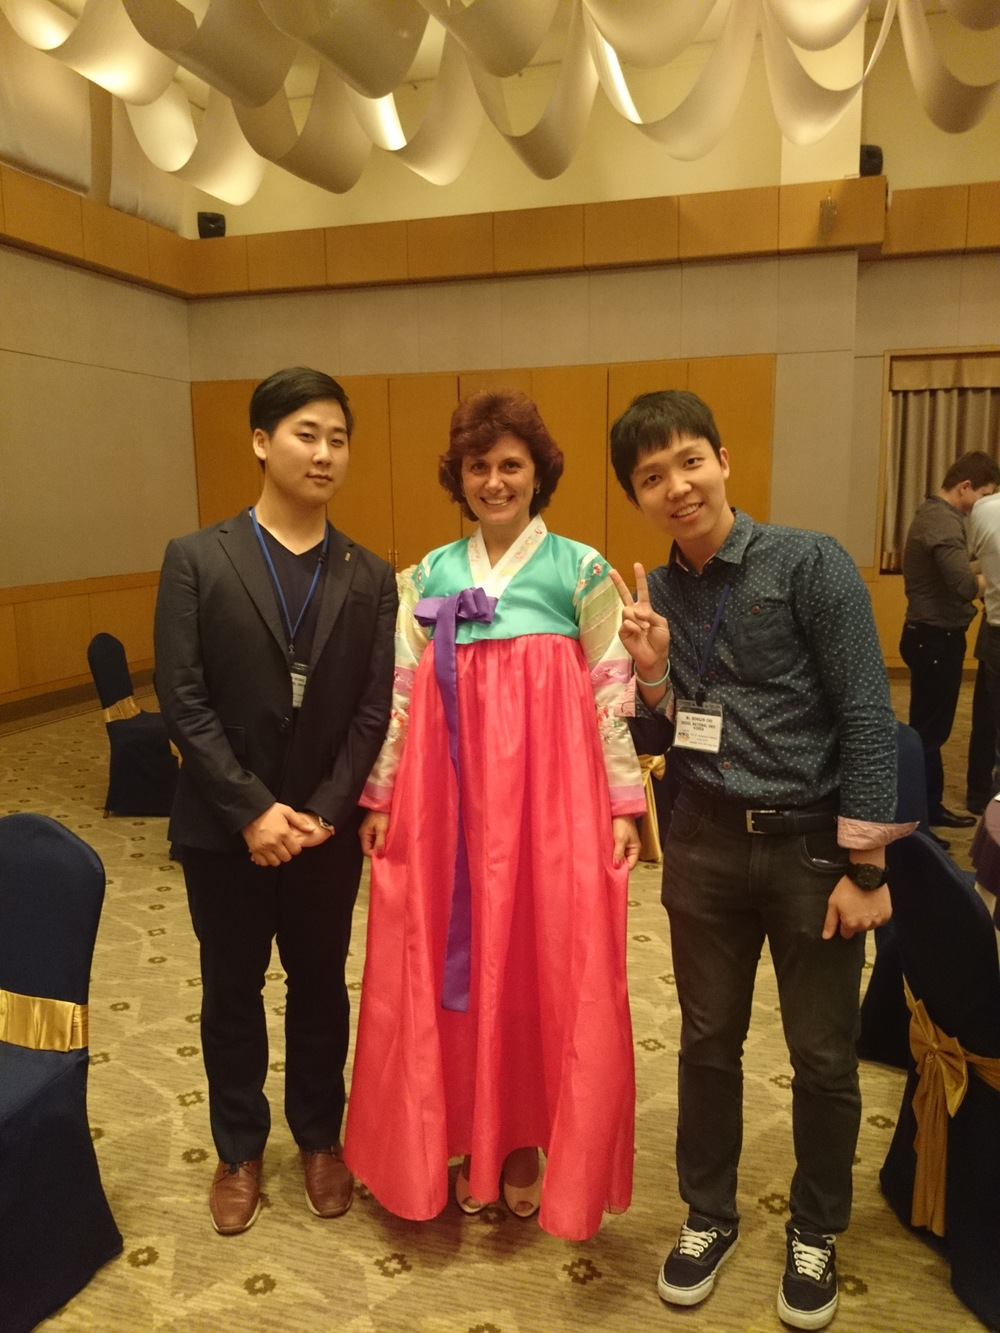 istvs_seoul2014-kim_Dr. Sandu in Korean traditional costume.jpg